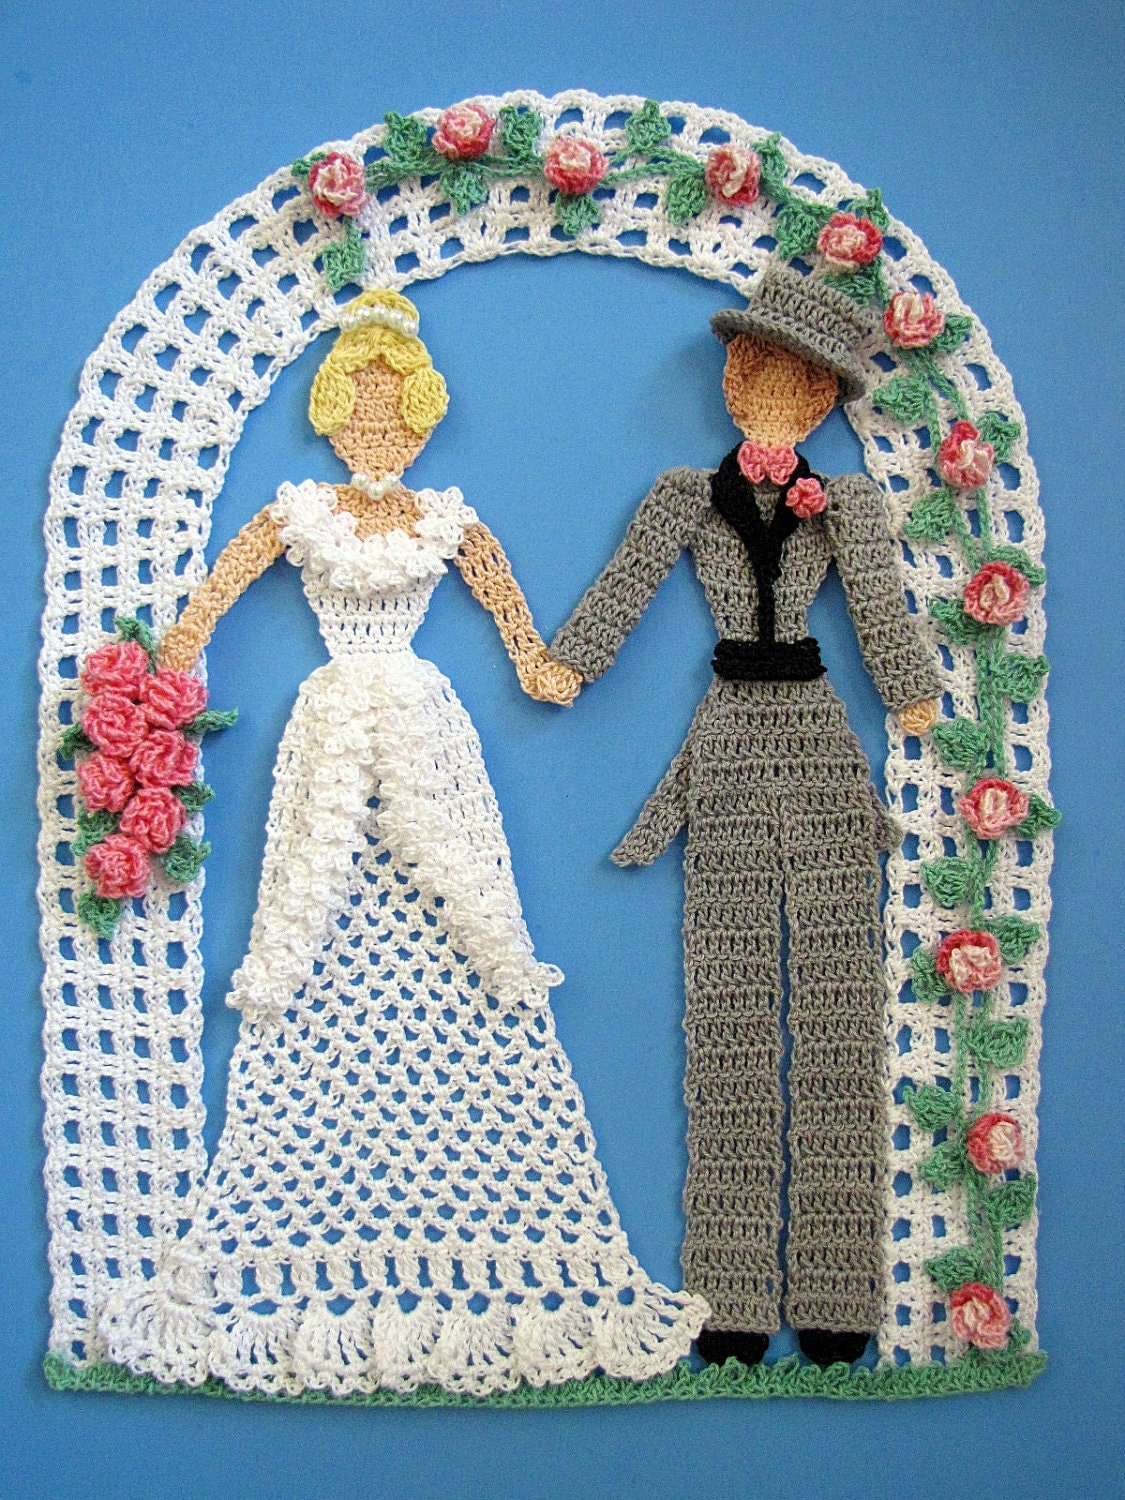 Happily Ever After Doily PDF Crochet Pattern Wedding Bride Groom Doily